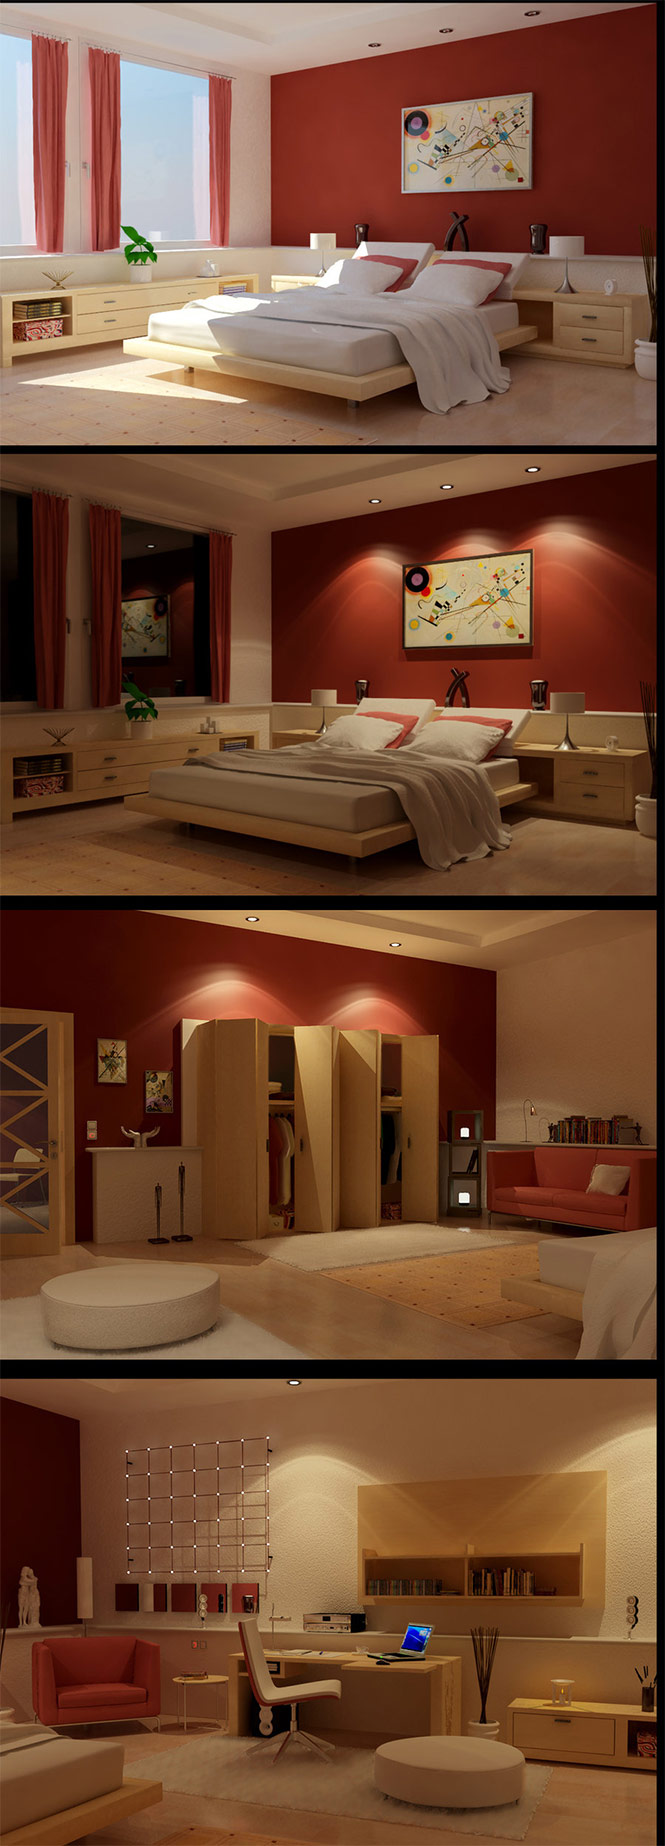 Enjoyable Colorful Bedroom For Unique Room Coloring: Inspirational Red Themed Bedroom Design Ideas